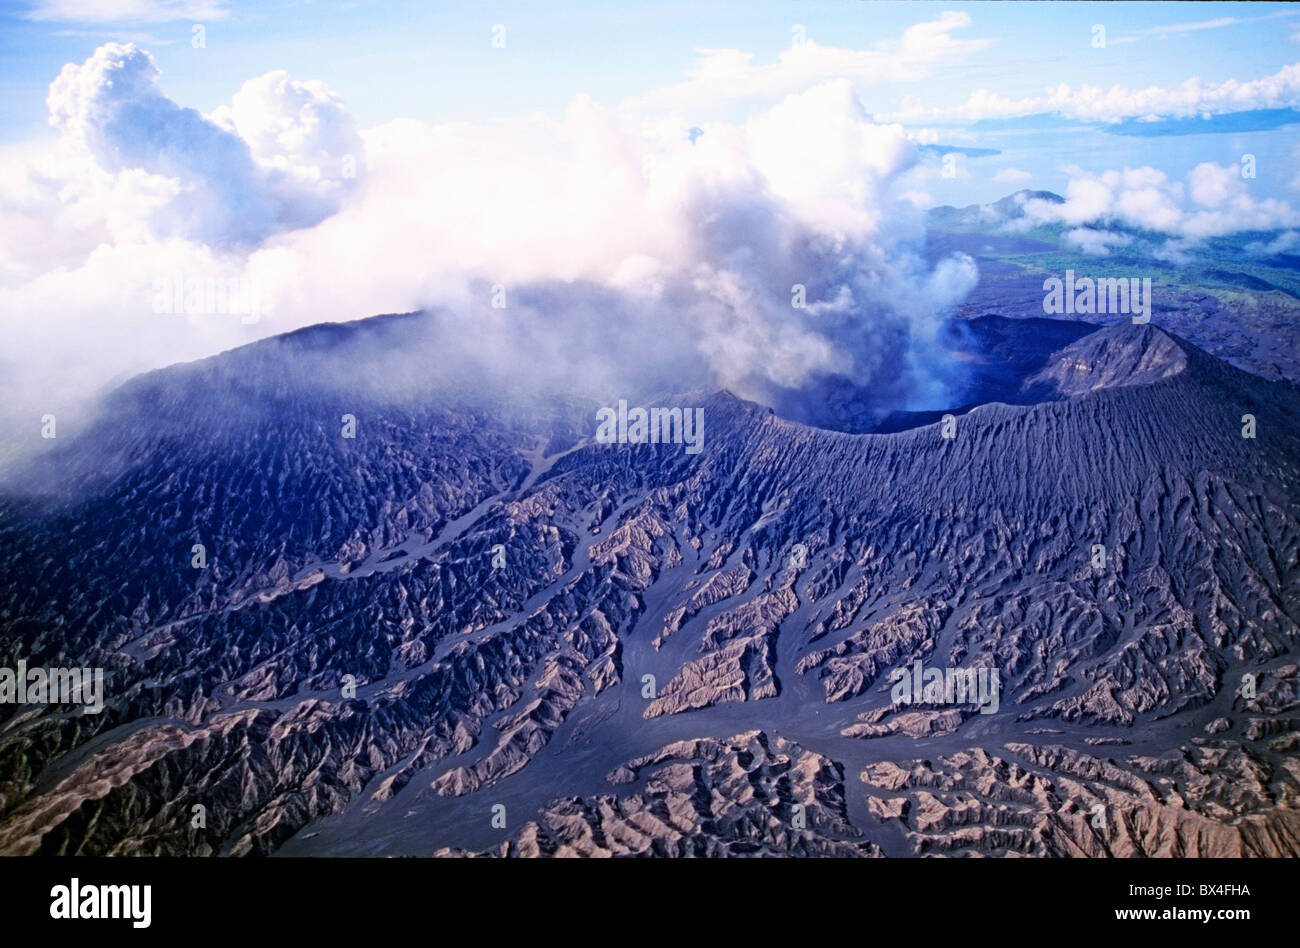 Mount Bembow, an active volcano on the island of Ambrym, Vanuatu, South Pacific Islands. - Stock Image